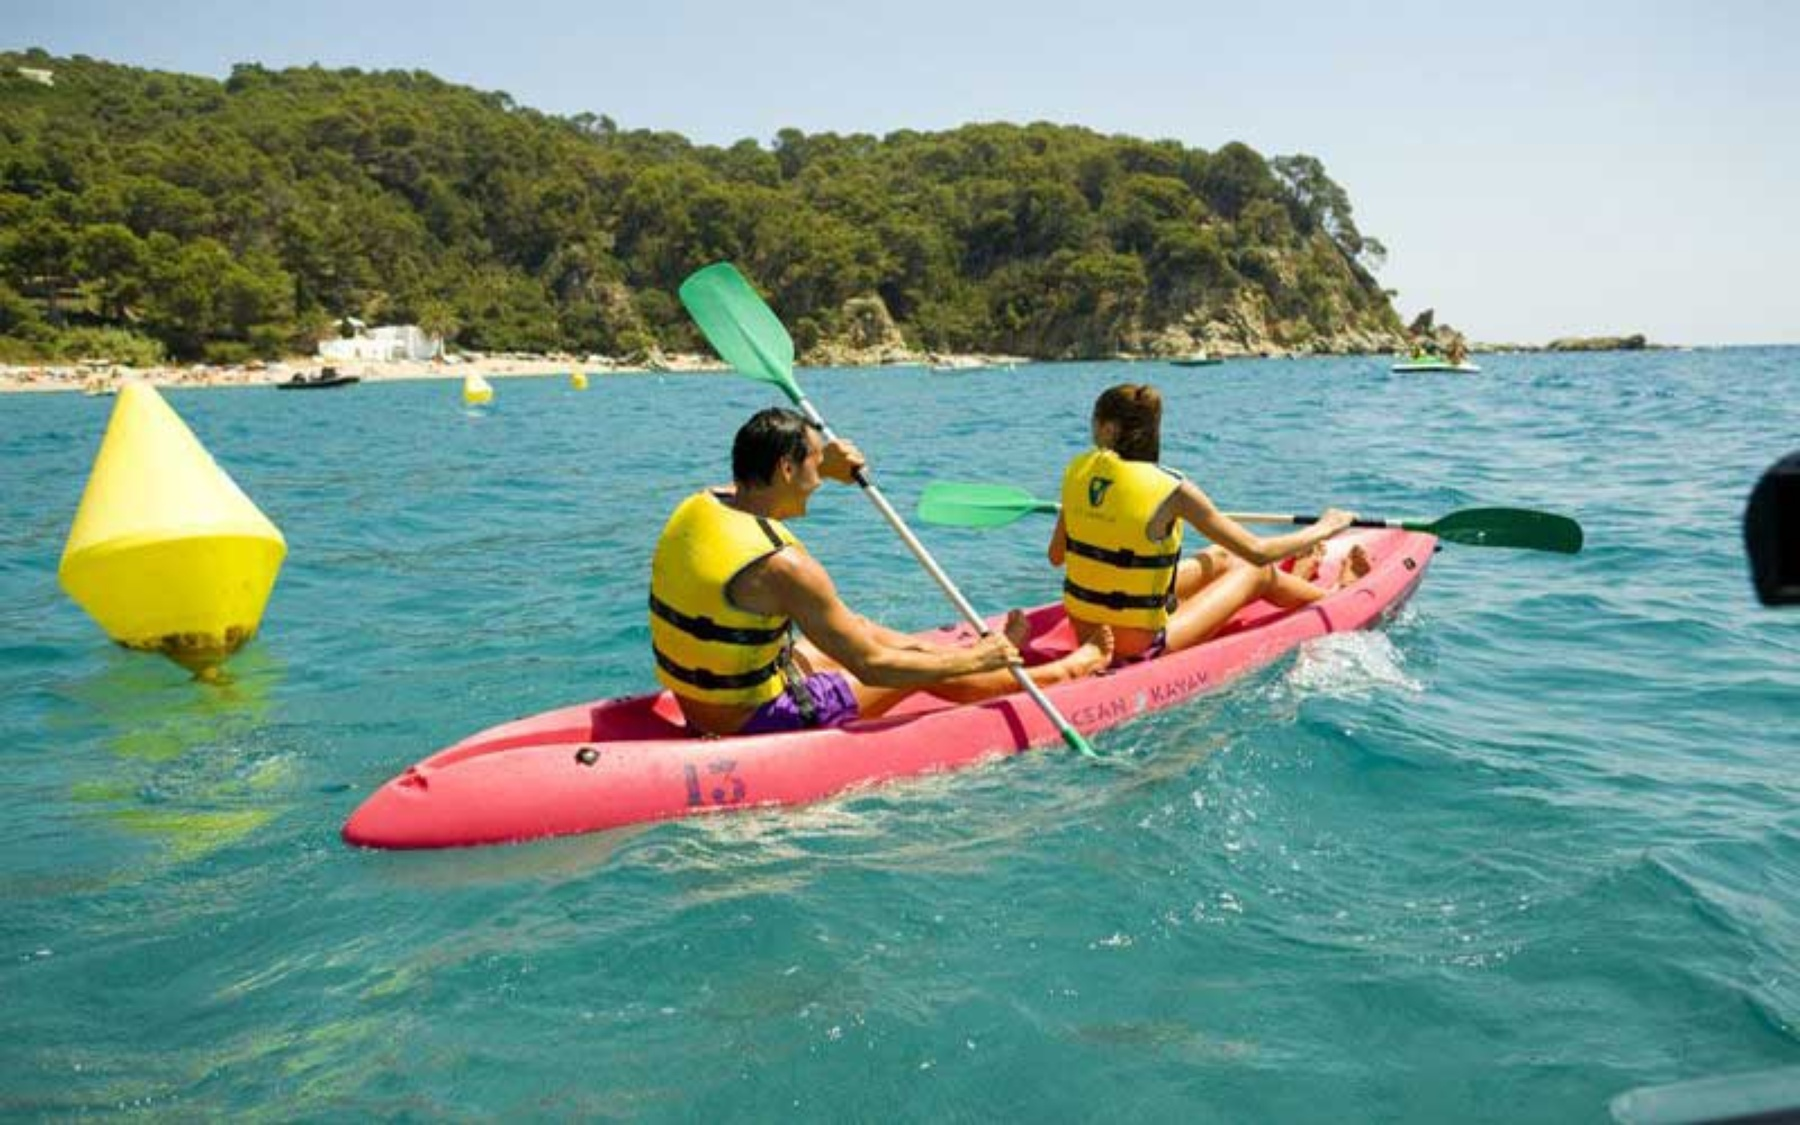 hotel activities scuba diving diving water sports water sports